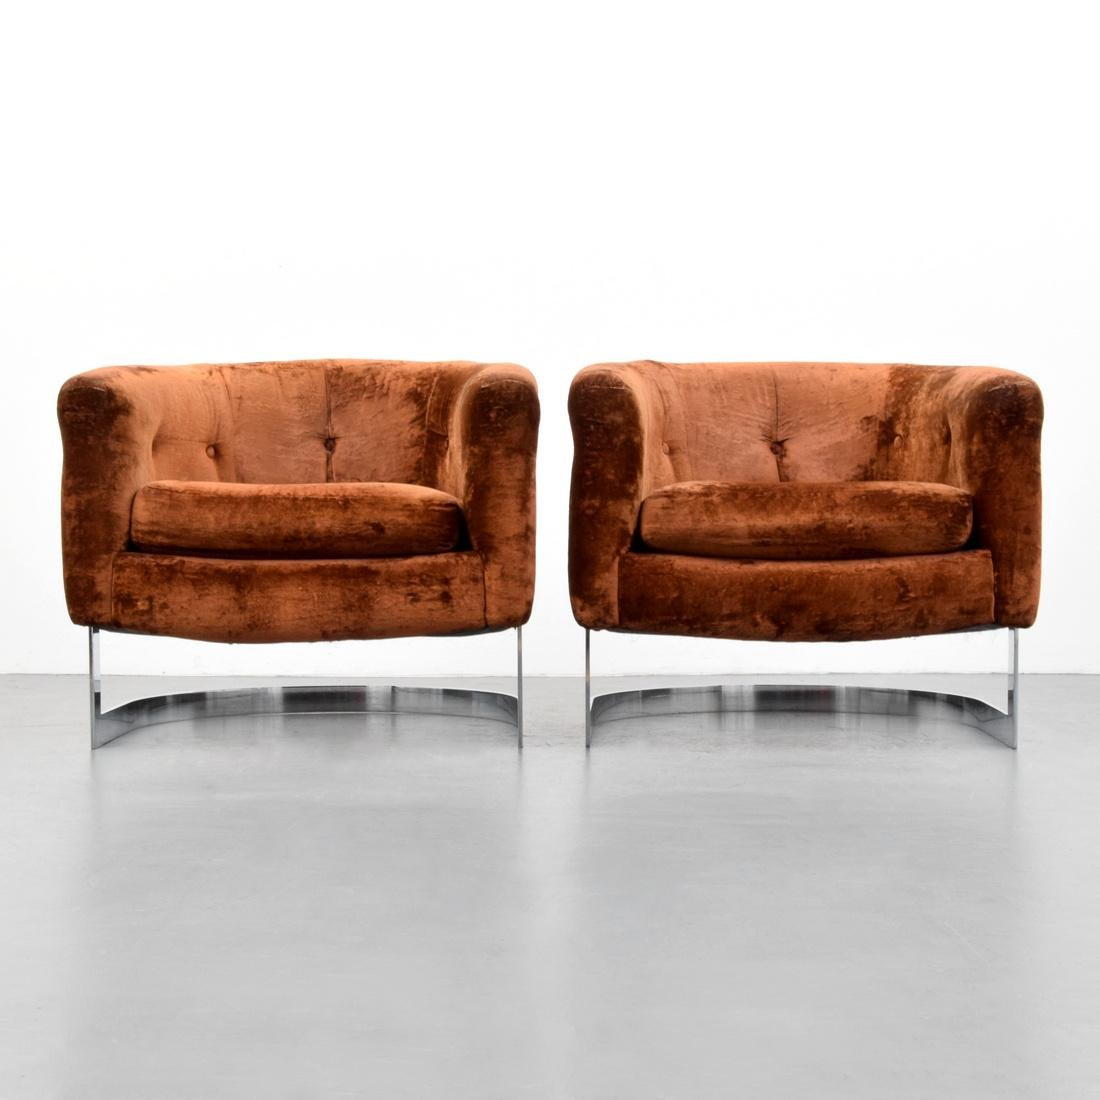 Pair of Lounge Chairs Attributed to Milo Baughman - 2